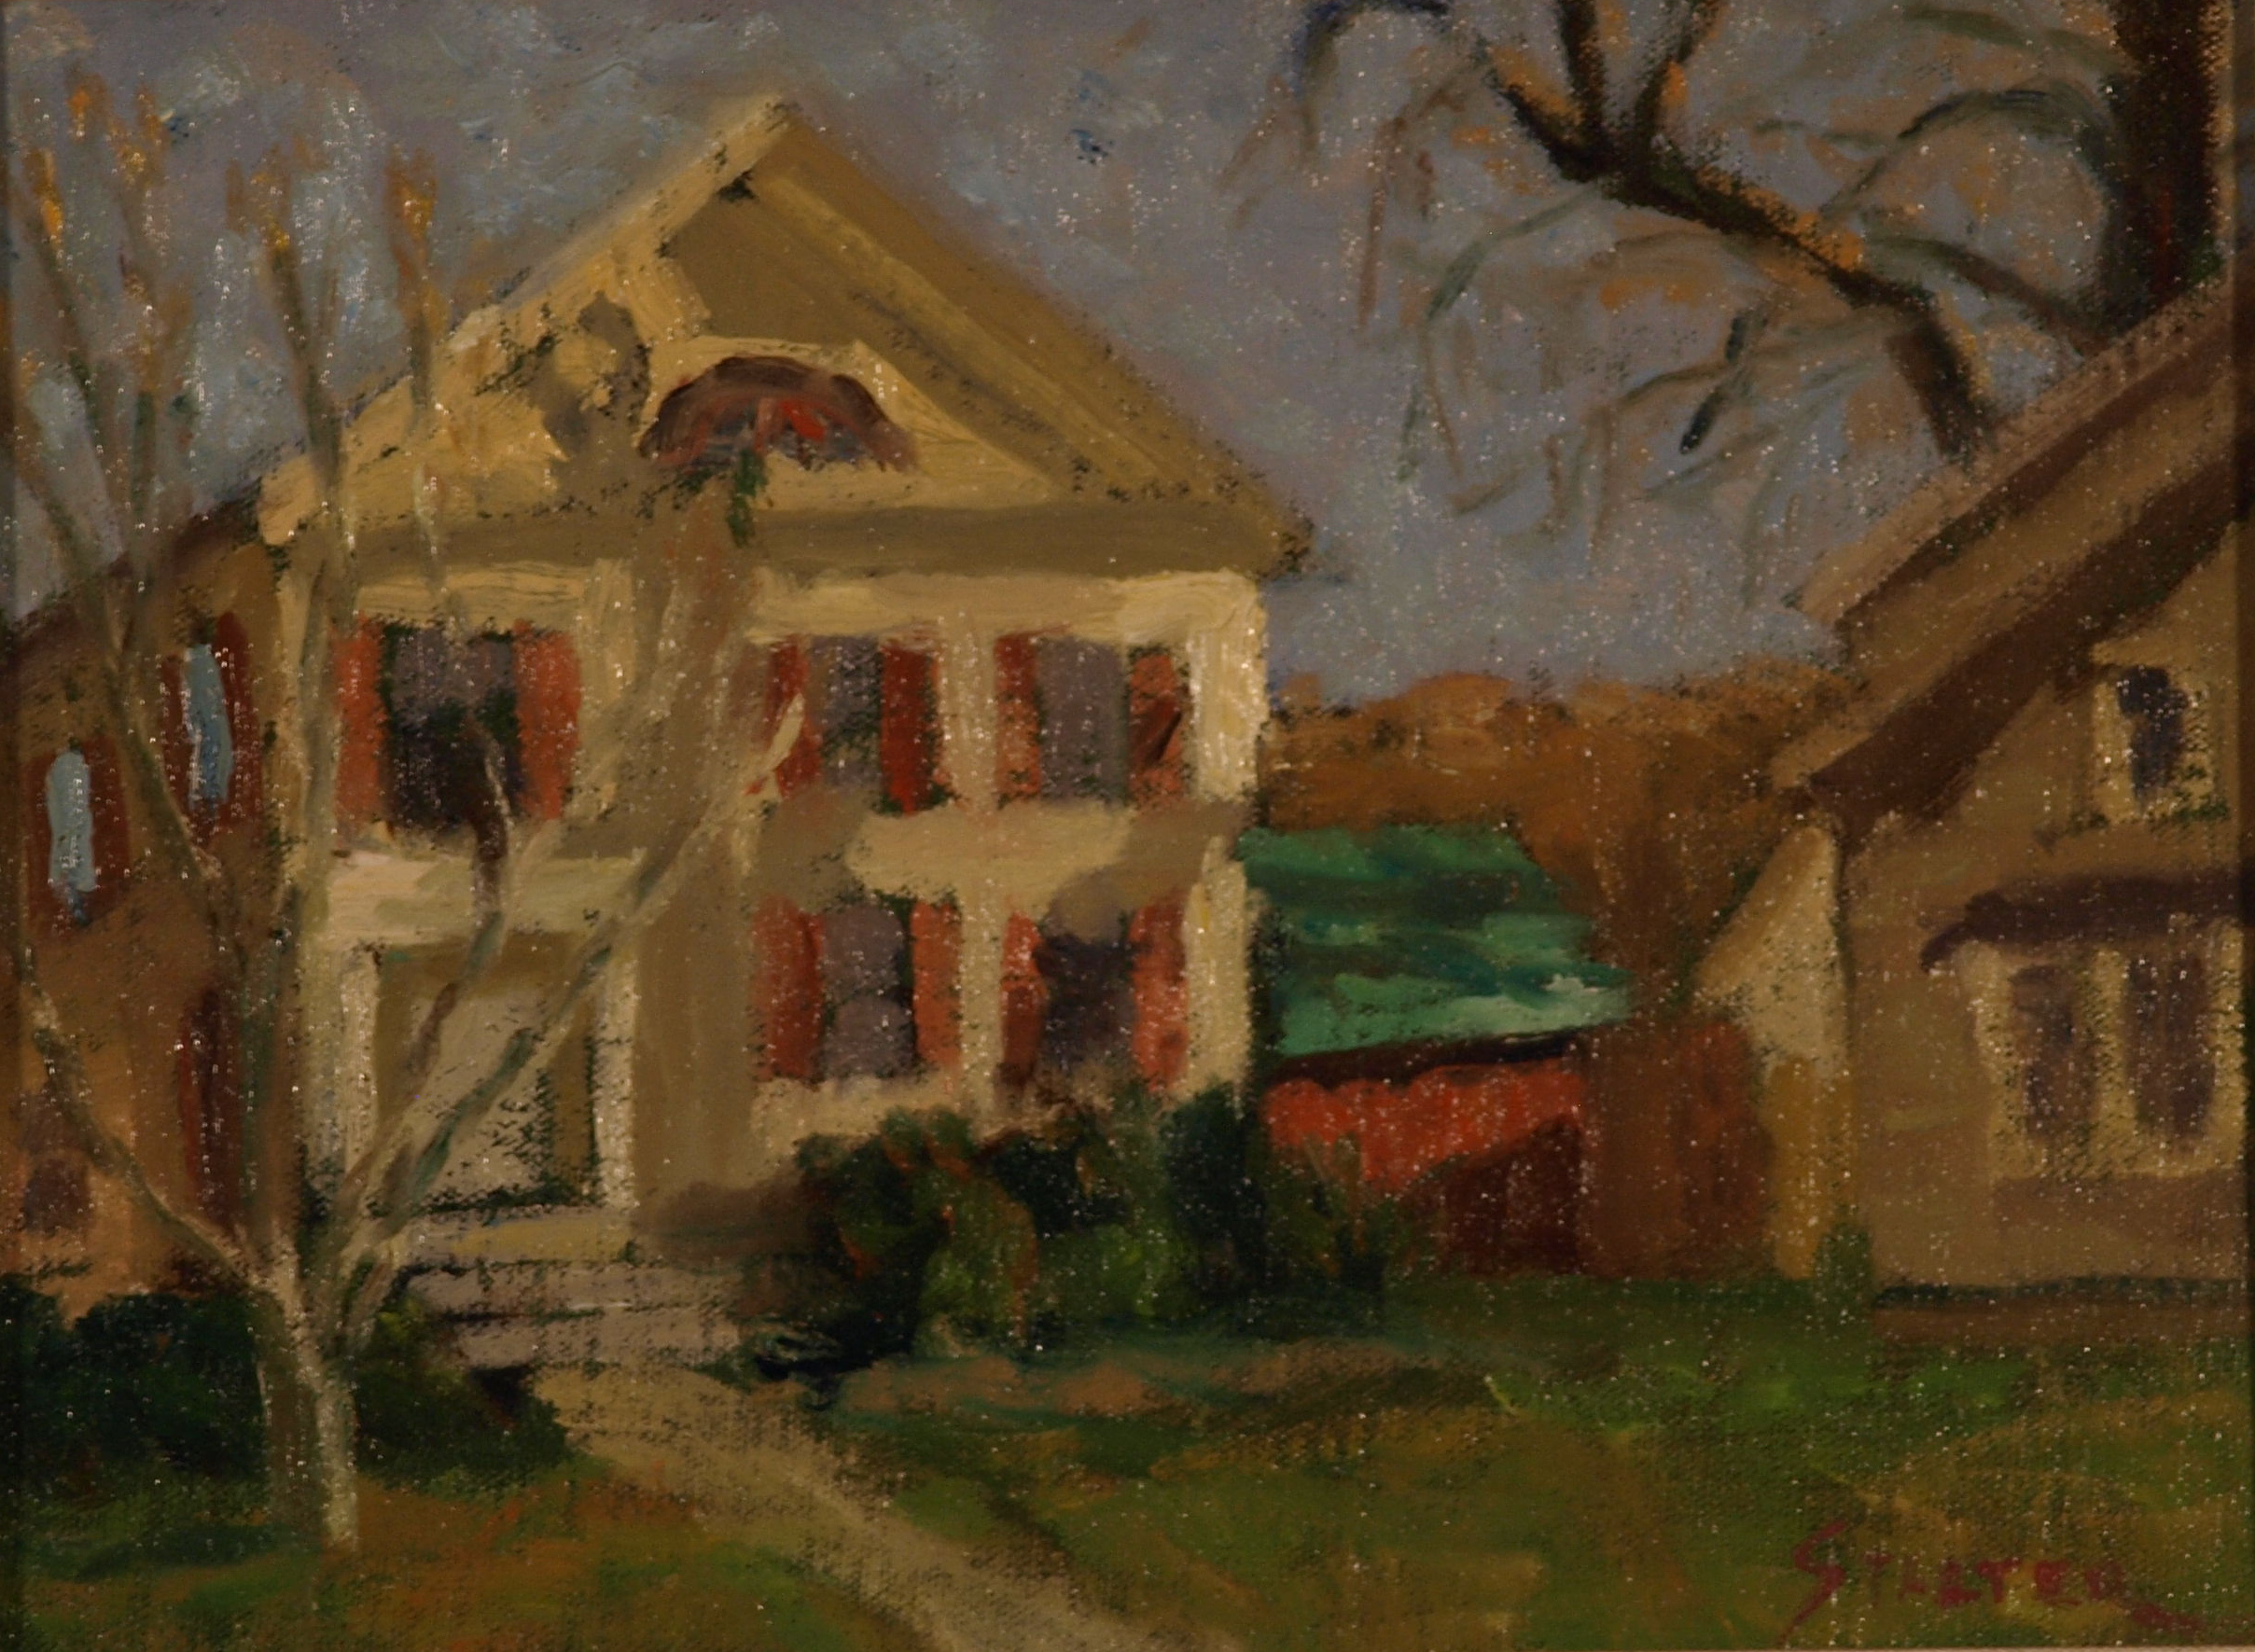 Library Annex, Oil on Canvas on Panel, 9 x 12 Inches, by Richard Stalter, $225